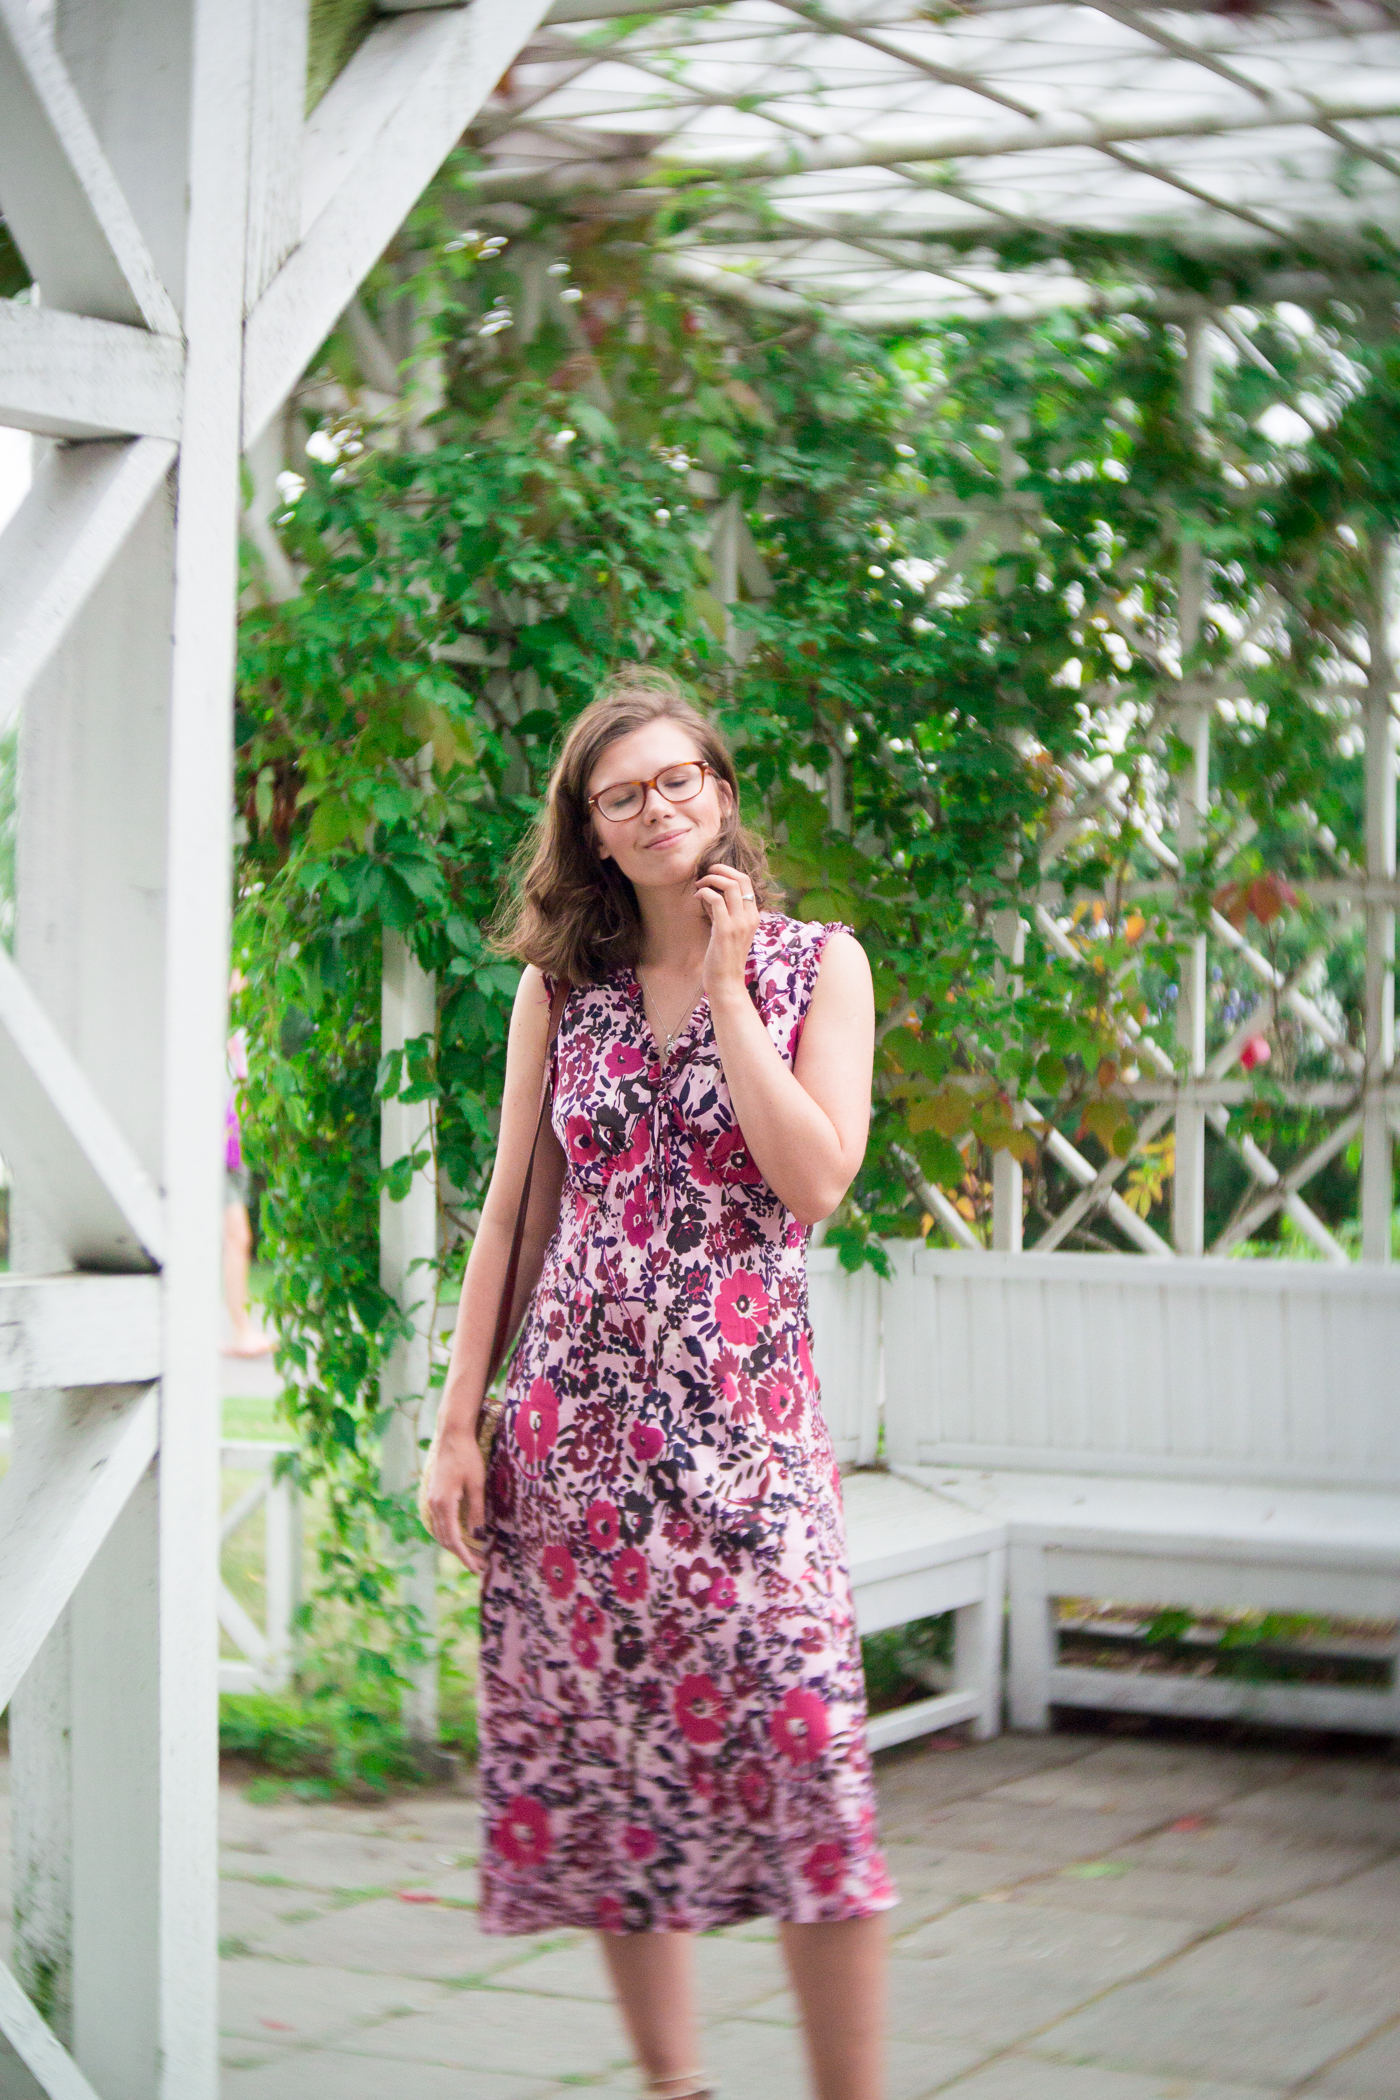 parnu-blogger-summer-vintage-dress-estonia